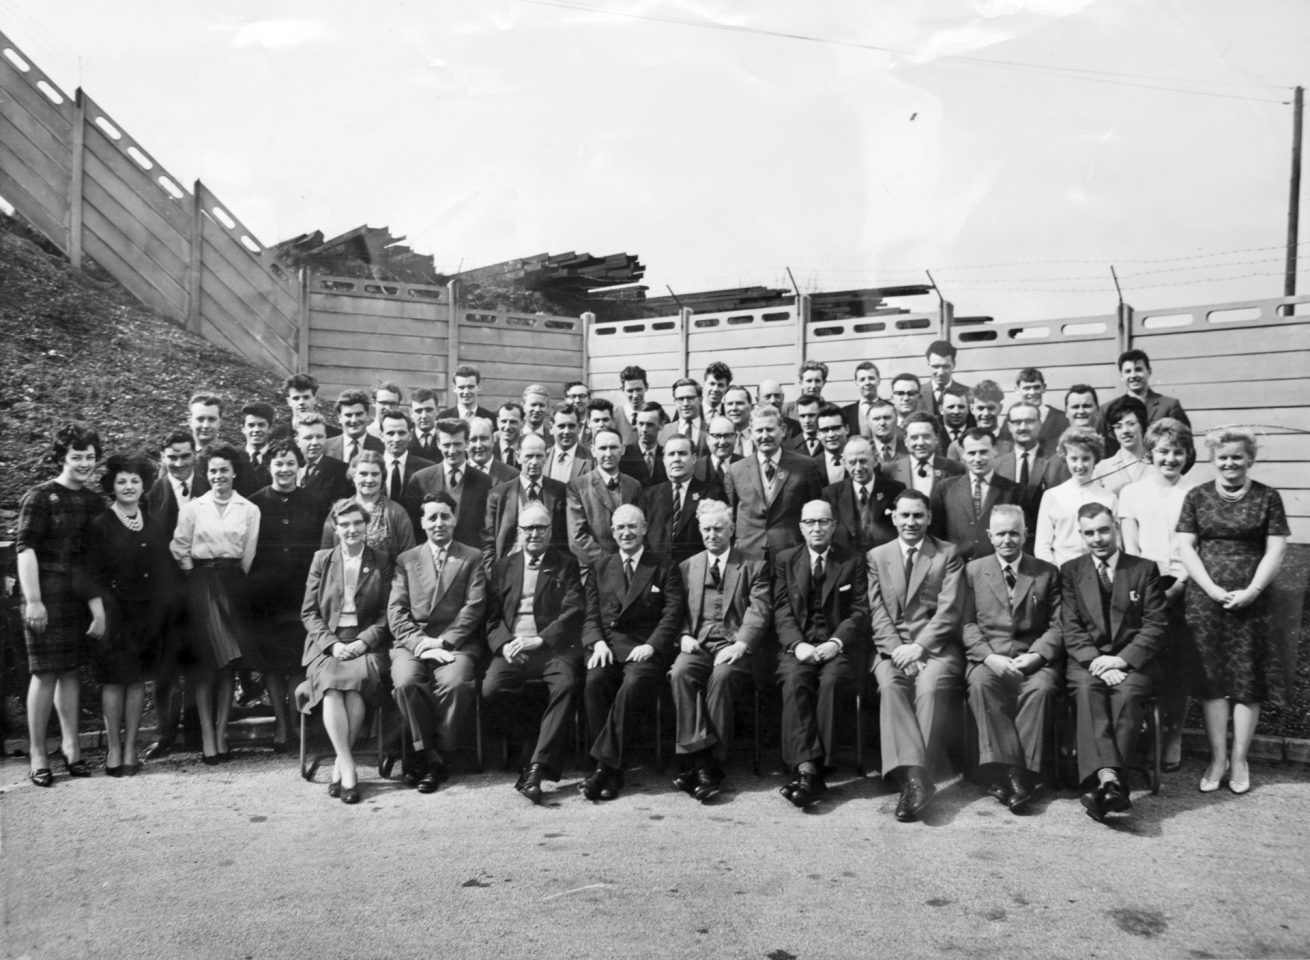 Staff at Edwin Danks Factory, 1963.